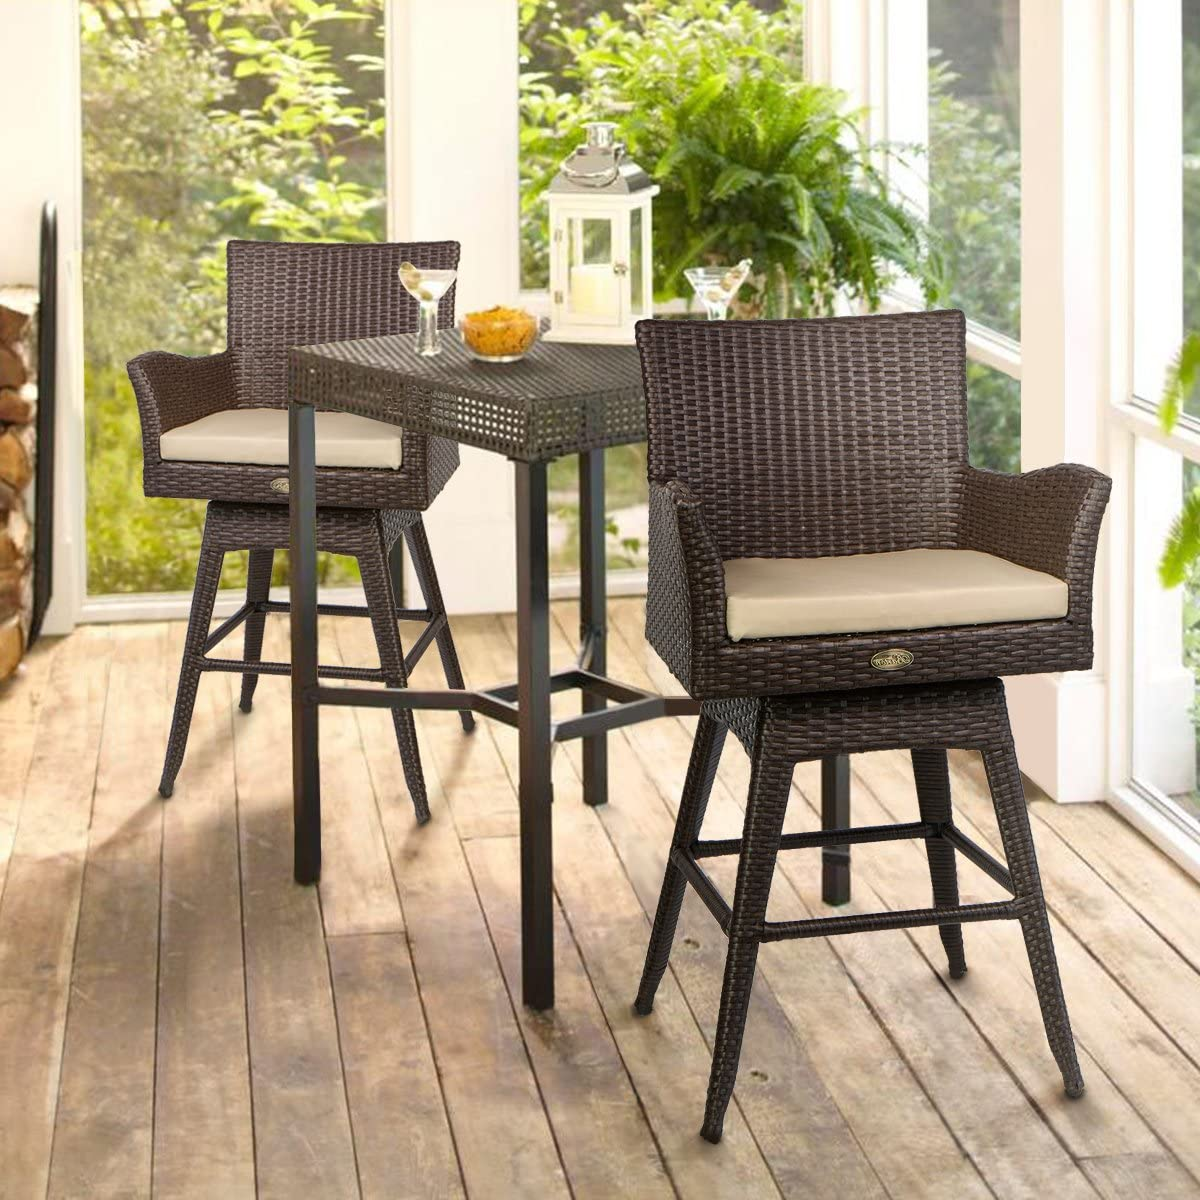 Barton Outdoor Patio Swivel Bar Stool Armrest with Footrest Rattan Crawford Sunbrella Weather-Resistant Fabric Cushion Set of 2